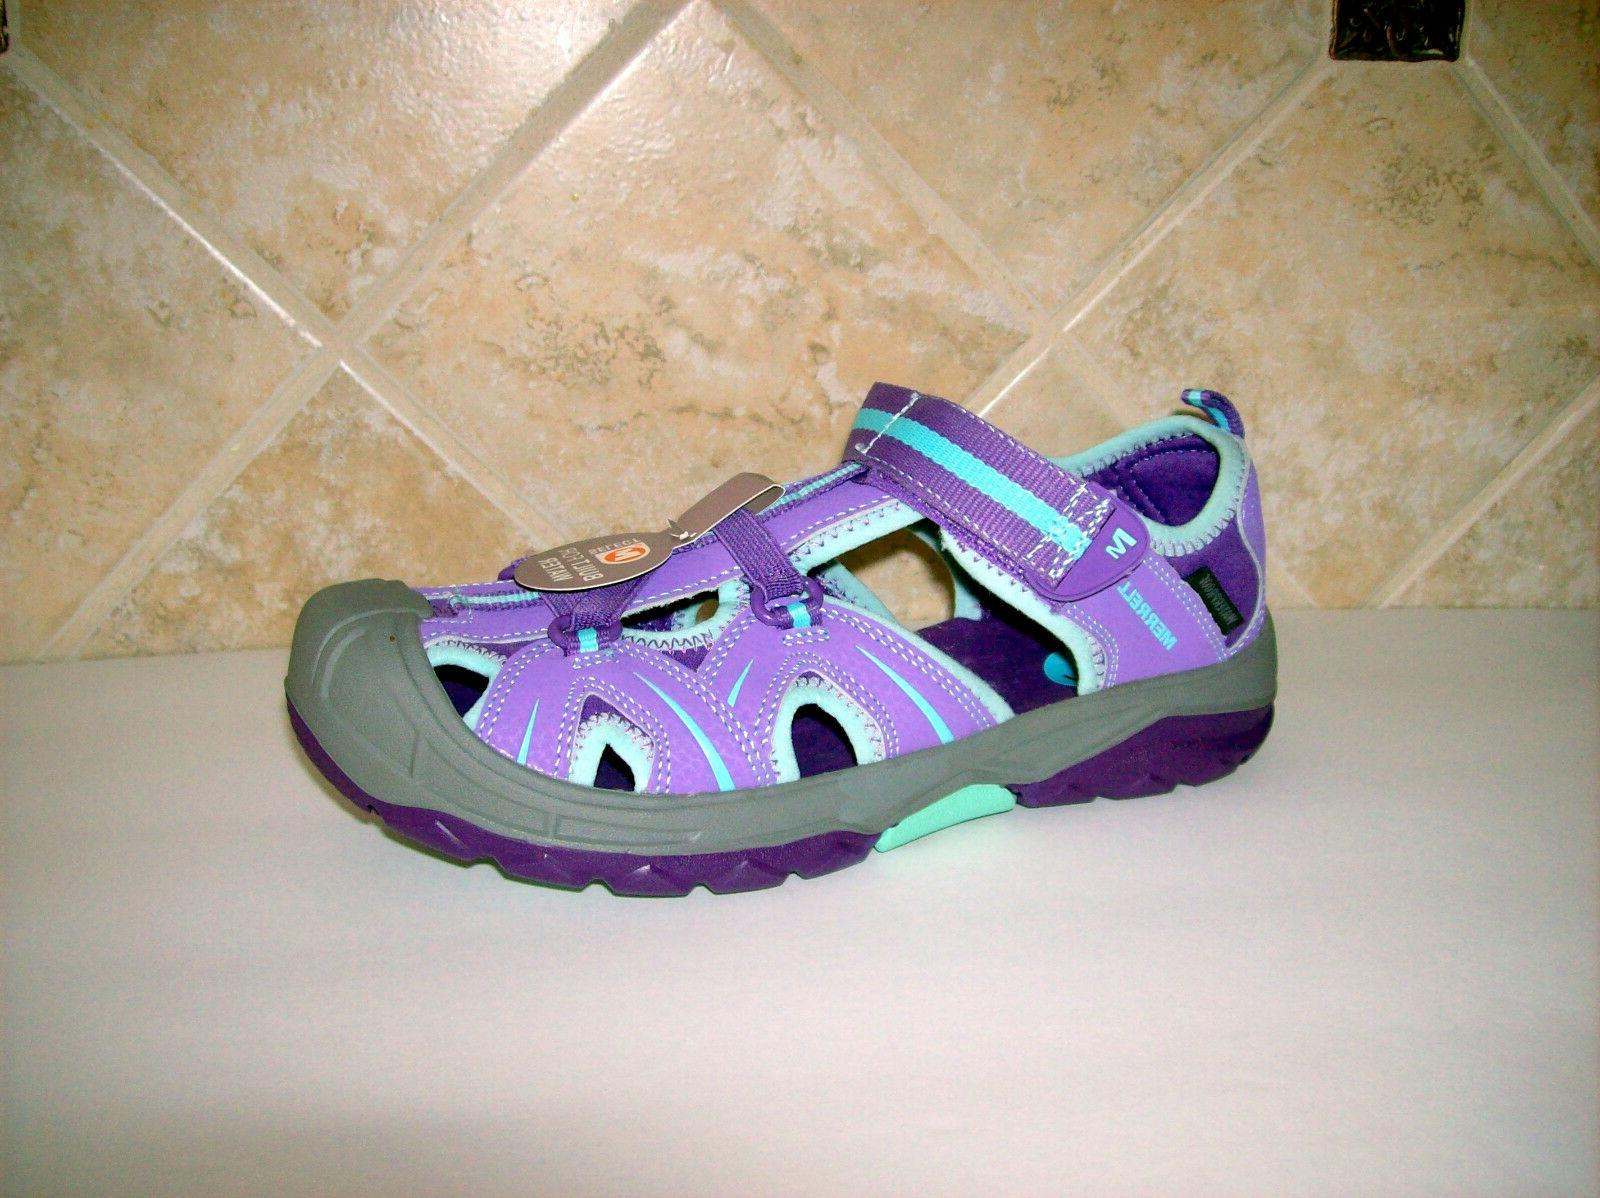 new womens water shoes hiking shoes mismarked